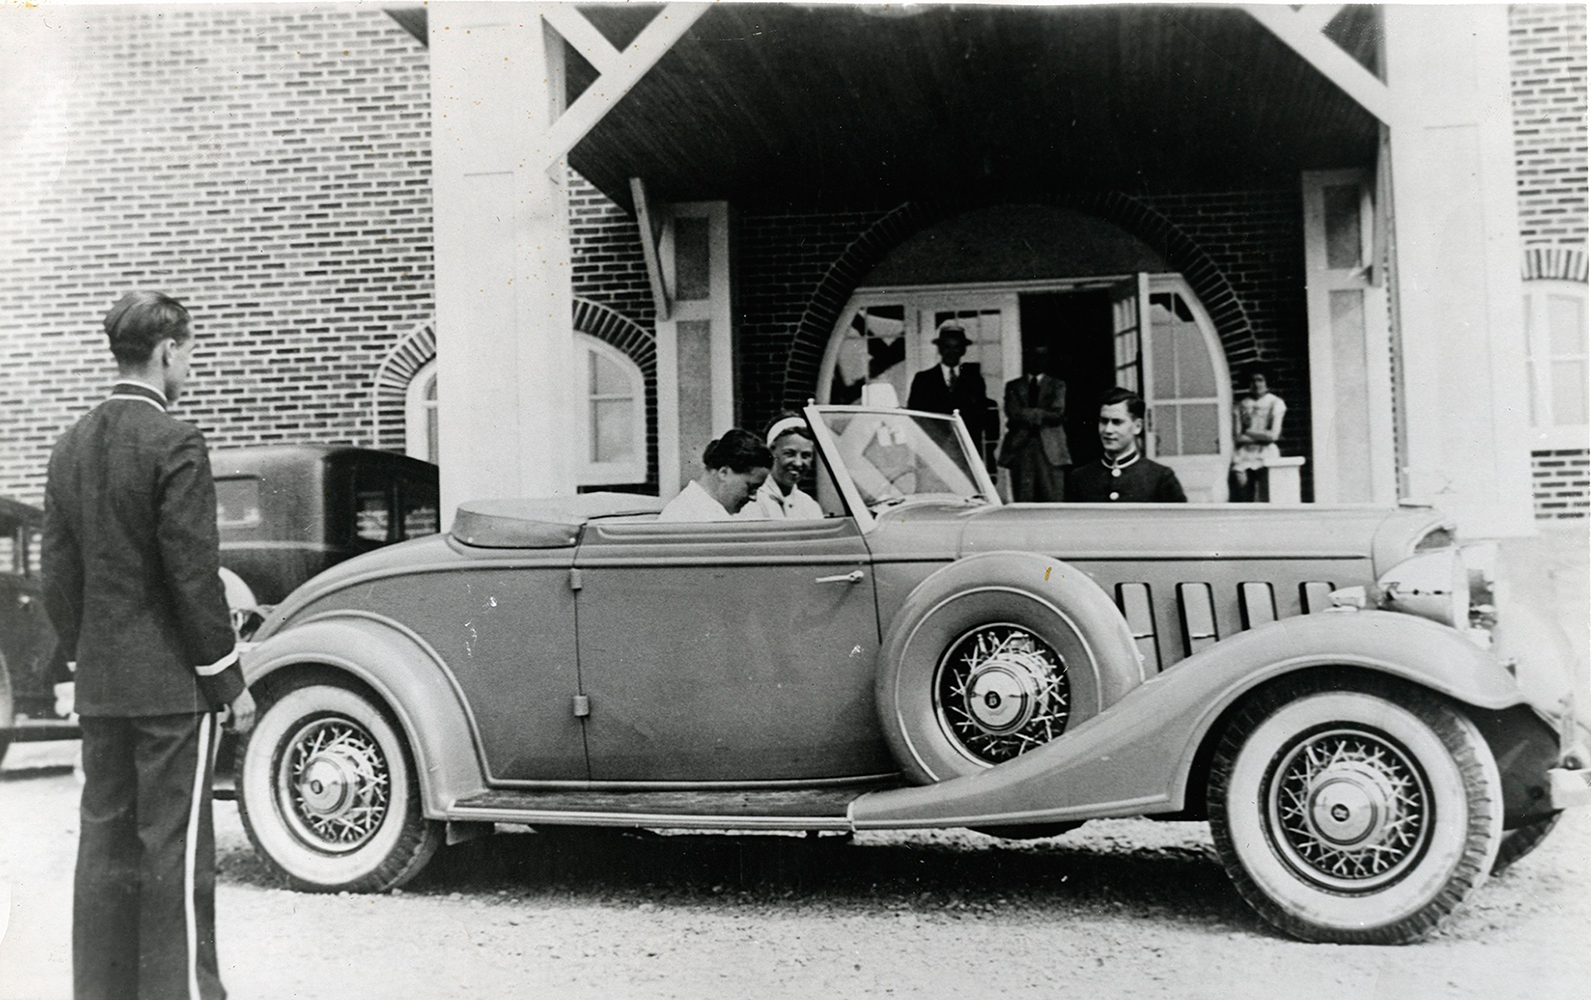 Black and white photograph. In a convertible Buick, two women, Eleanor Roosevelt and her friend Lorena Hickok, are about to depart. The car is parked at the front of the La Belle Plage hotel in Matane. A doorman and bellboy from the hotel are waiting for the departure of their distinguished guests.